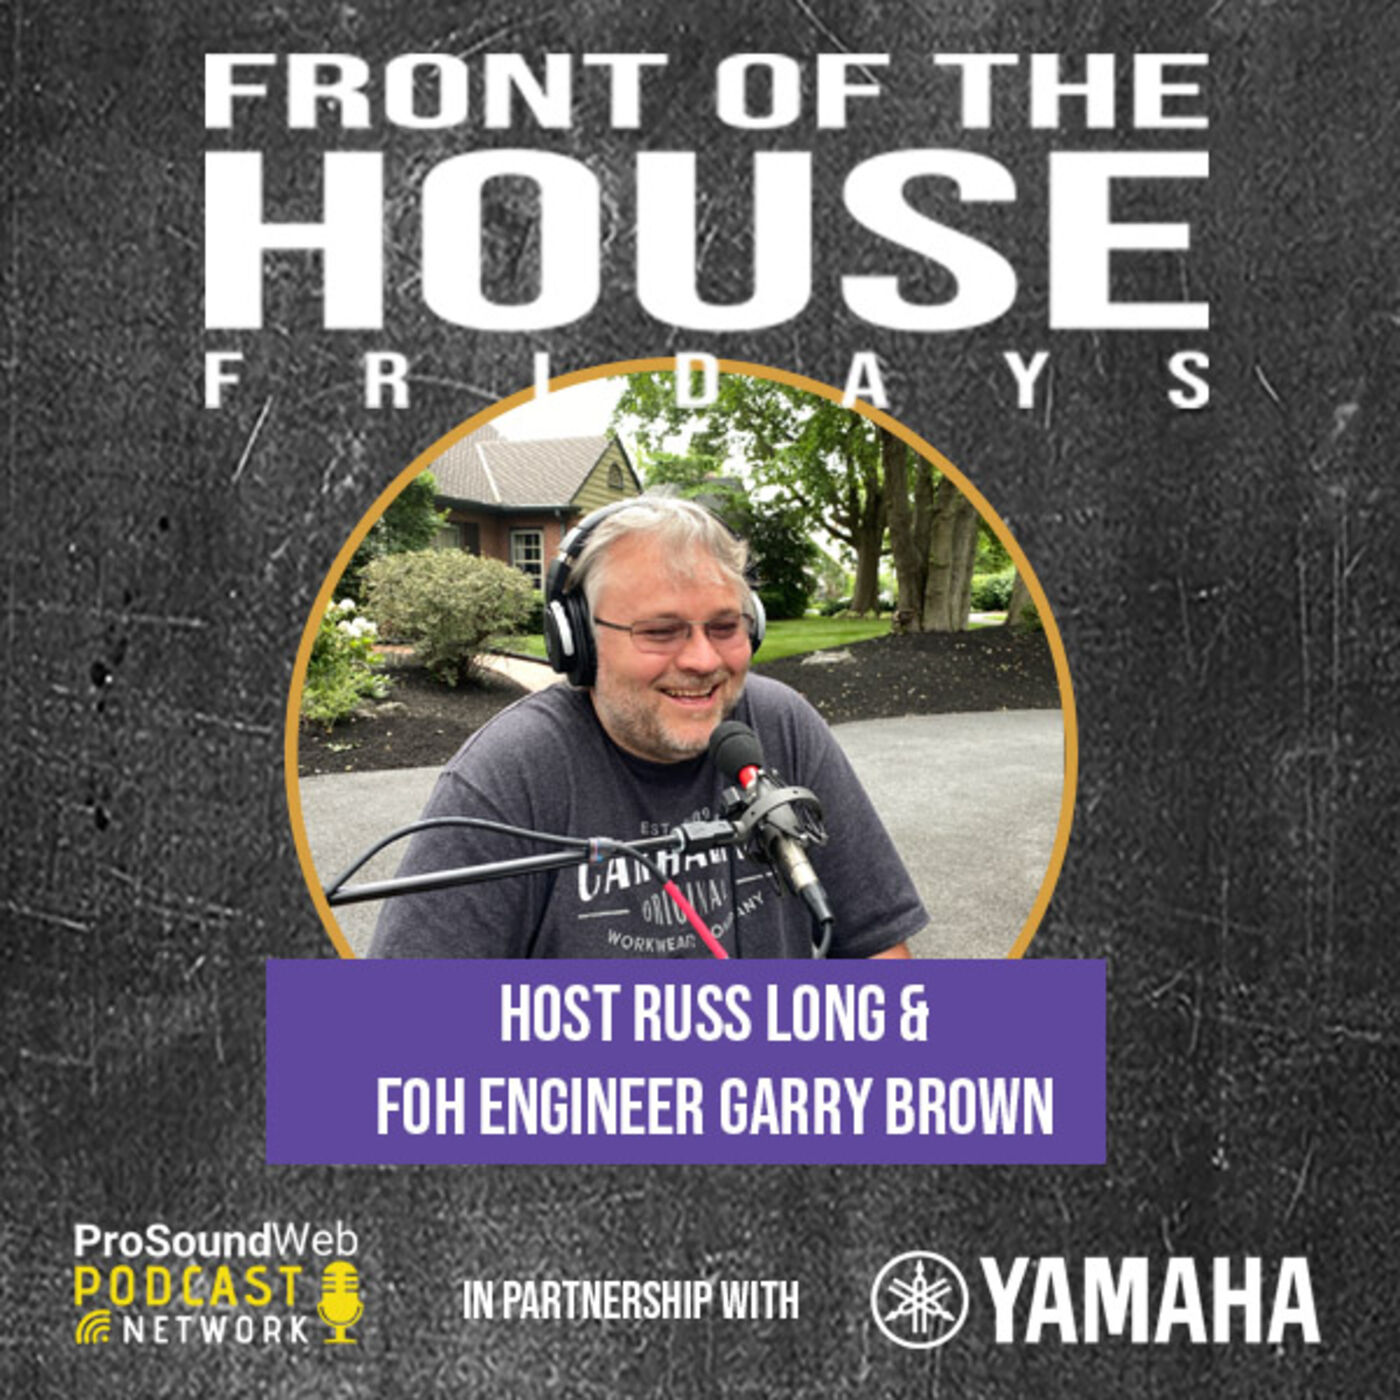 Episode 6: FOH & Monitor Engineer Garry Brown